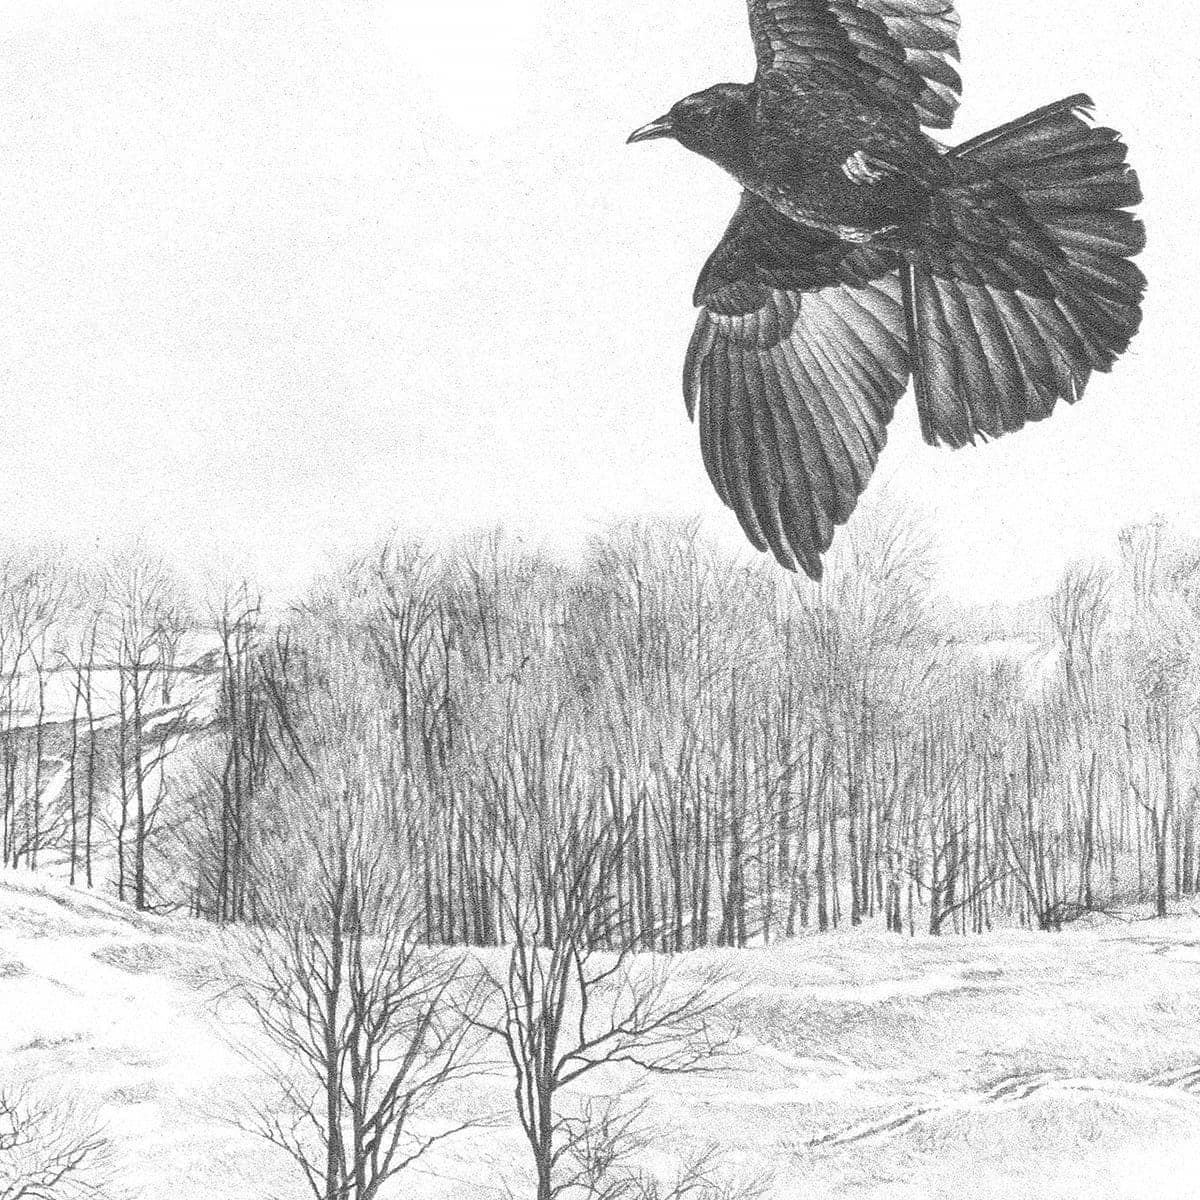 Crow Flying Over Landscape - Canvas Print by Glen Loates from the Glen Loates Store